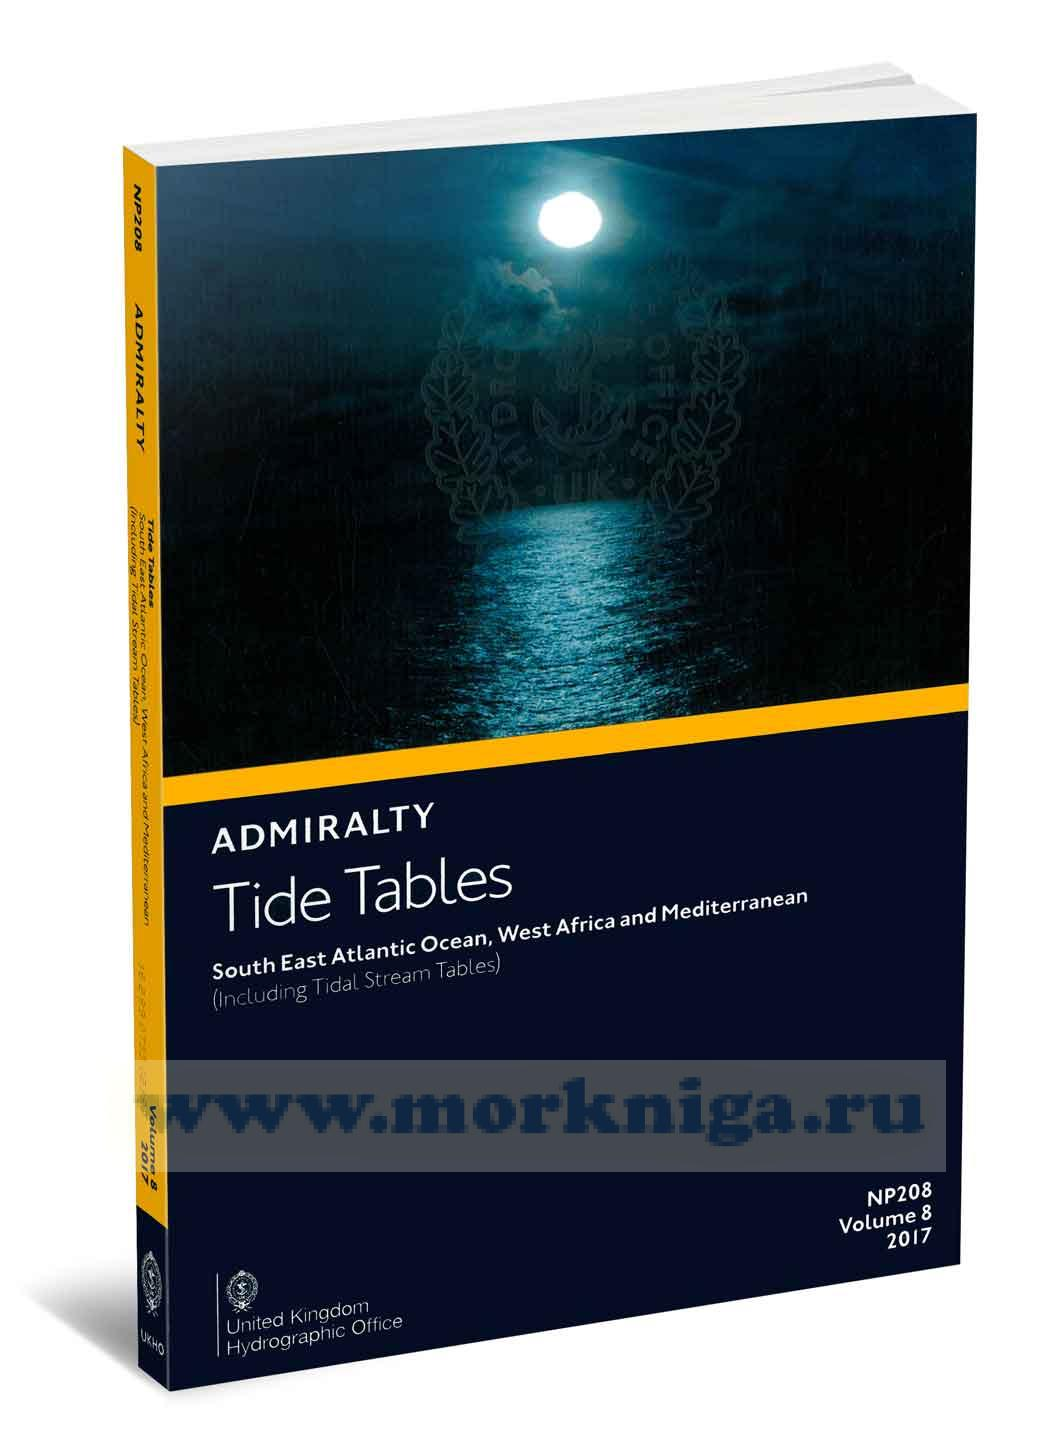 Admiralty Tide Tables. NP208. Volume 8. 2017. South East Atlantic Oсean, West African and Mediterranean